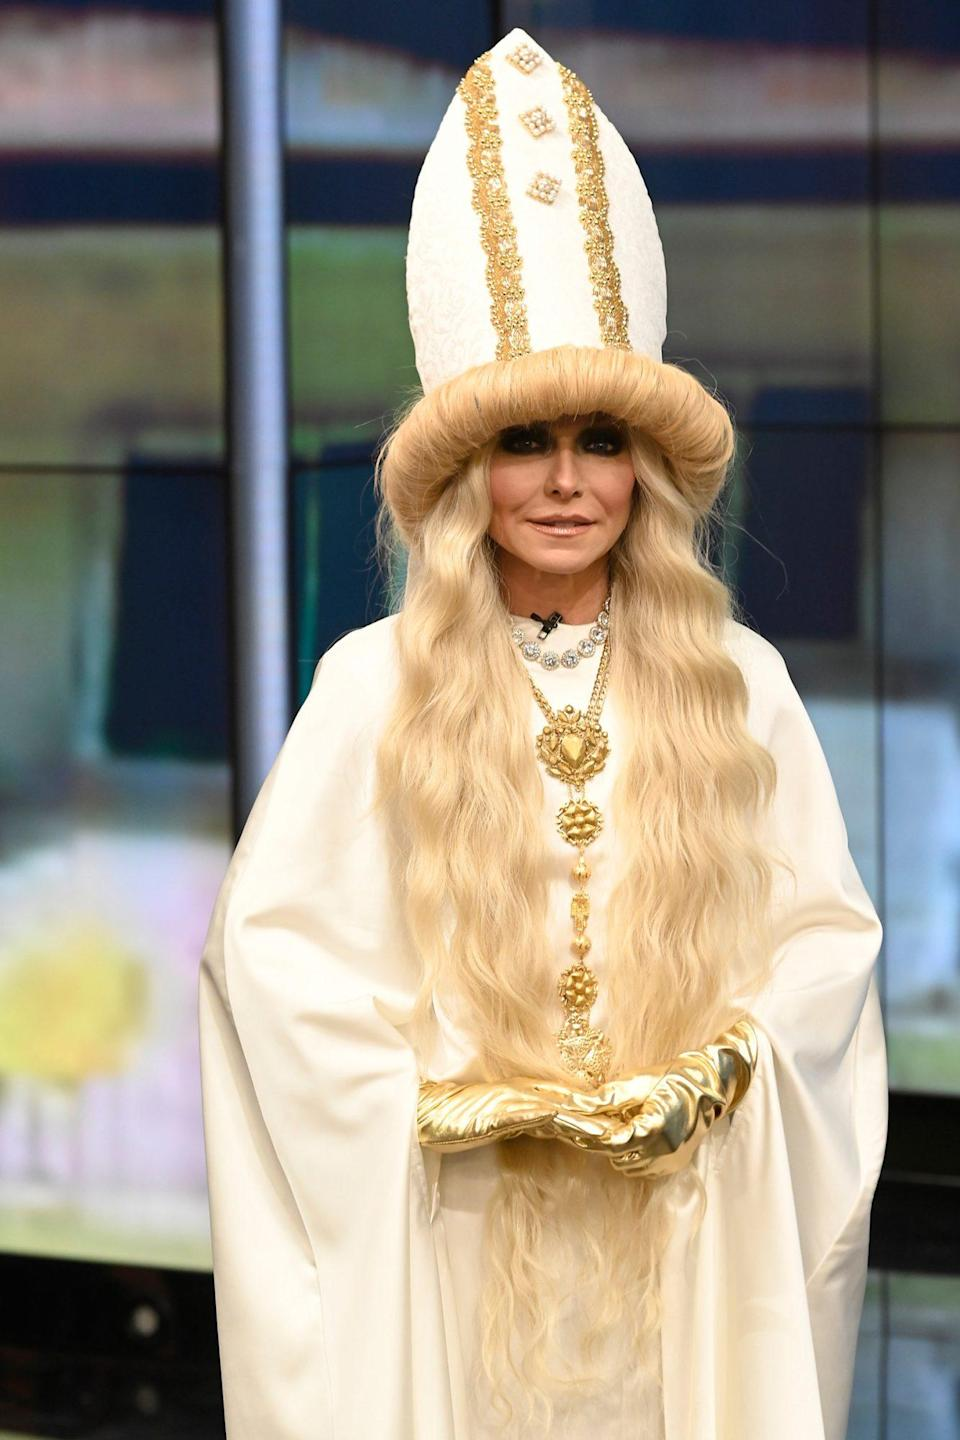 <p>The <em>Live with Kelly and Ryan </em>host knocked it out of the park with this <em>Schitt's Creek </em>costume, channeling the show's matriarch, Moira Rose (played by Catherine O'Hara).</p>